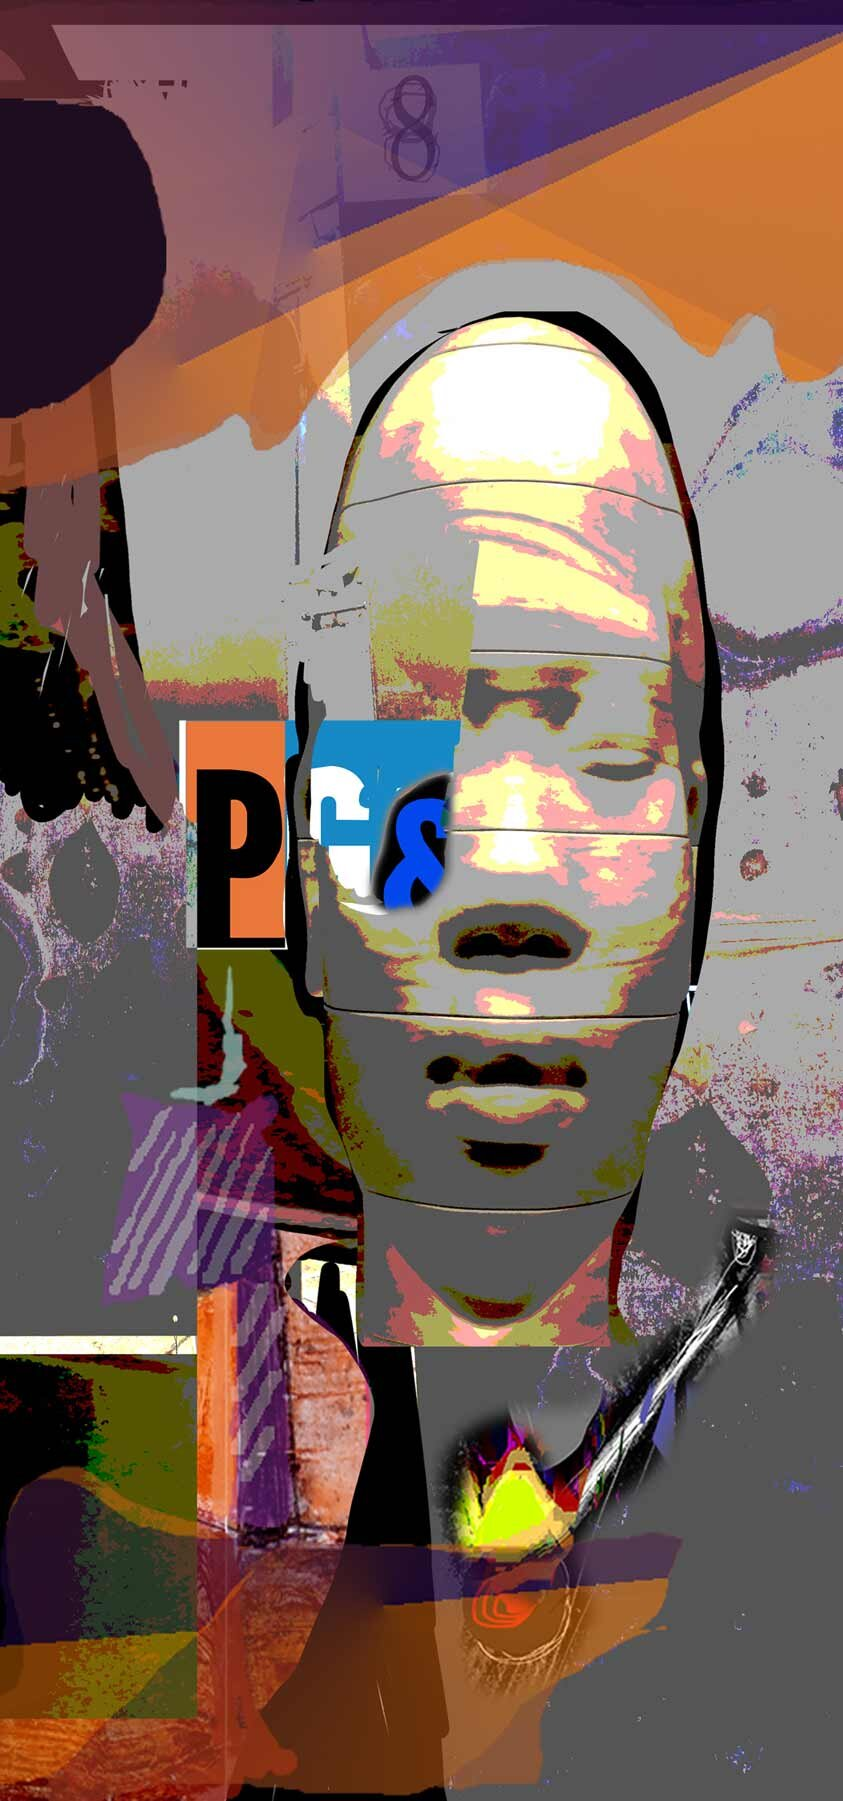 """Conflict of Interest,  2019, Digital on Aluminum (Limited edition 3/25), 50"""" x 23.75"""" x 3/4"""".  Abstract portraiture of a man in oval face in the center, purple, orange, gray background."""